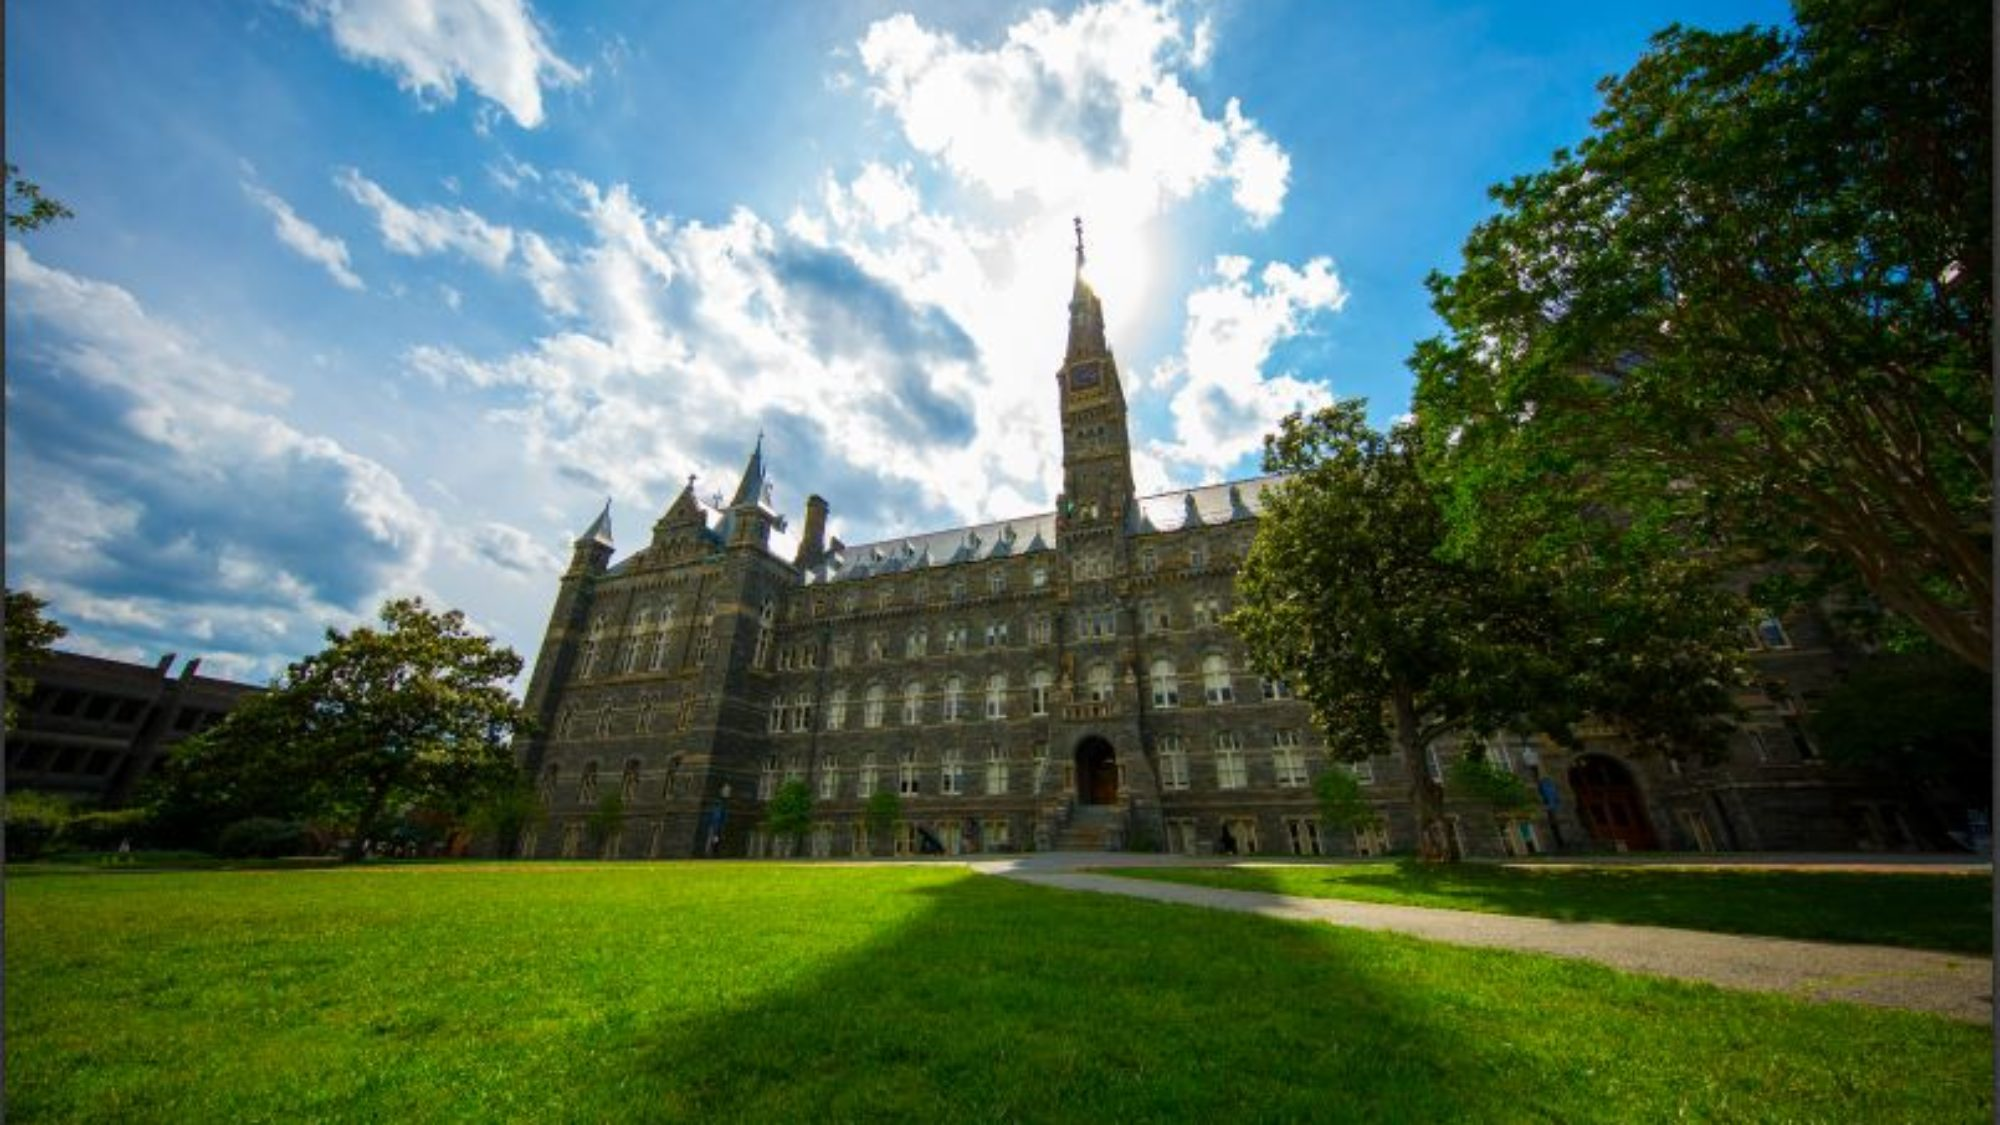 Healy Hall with green lawn and blue sky and fluffy clouds behind it